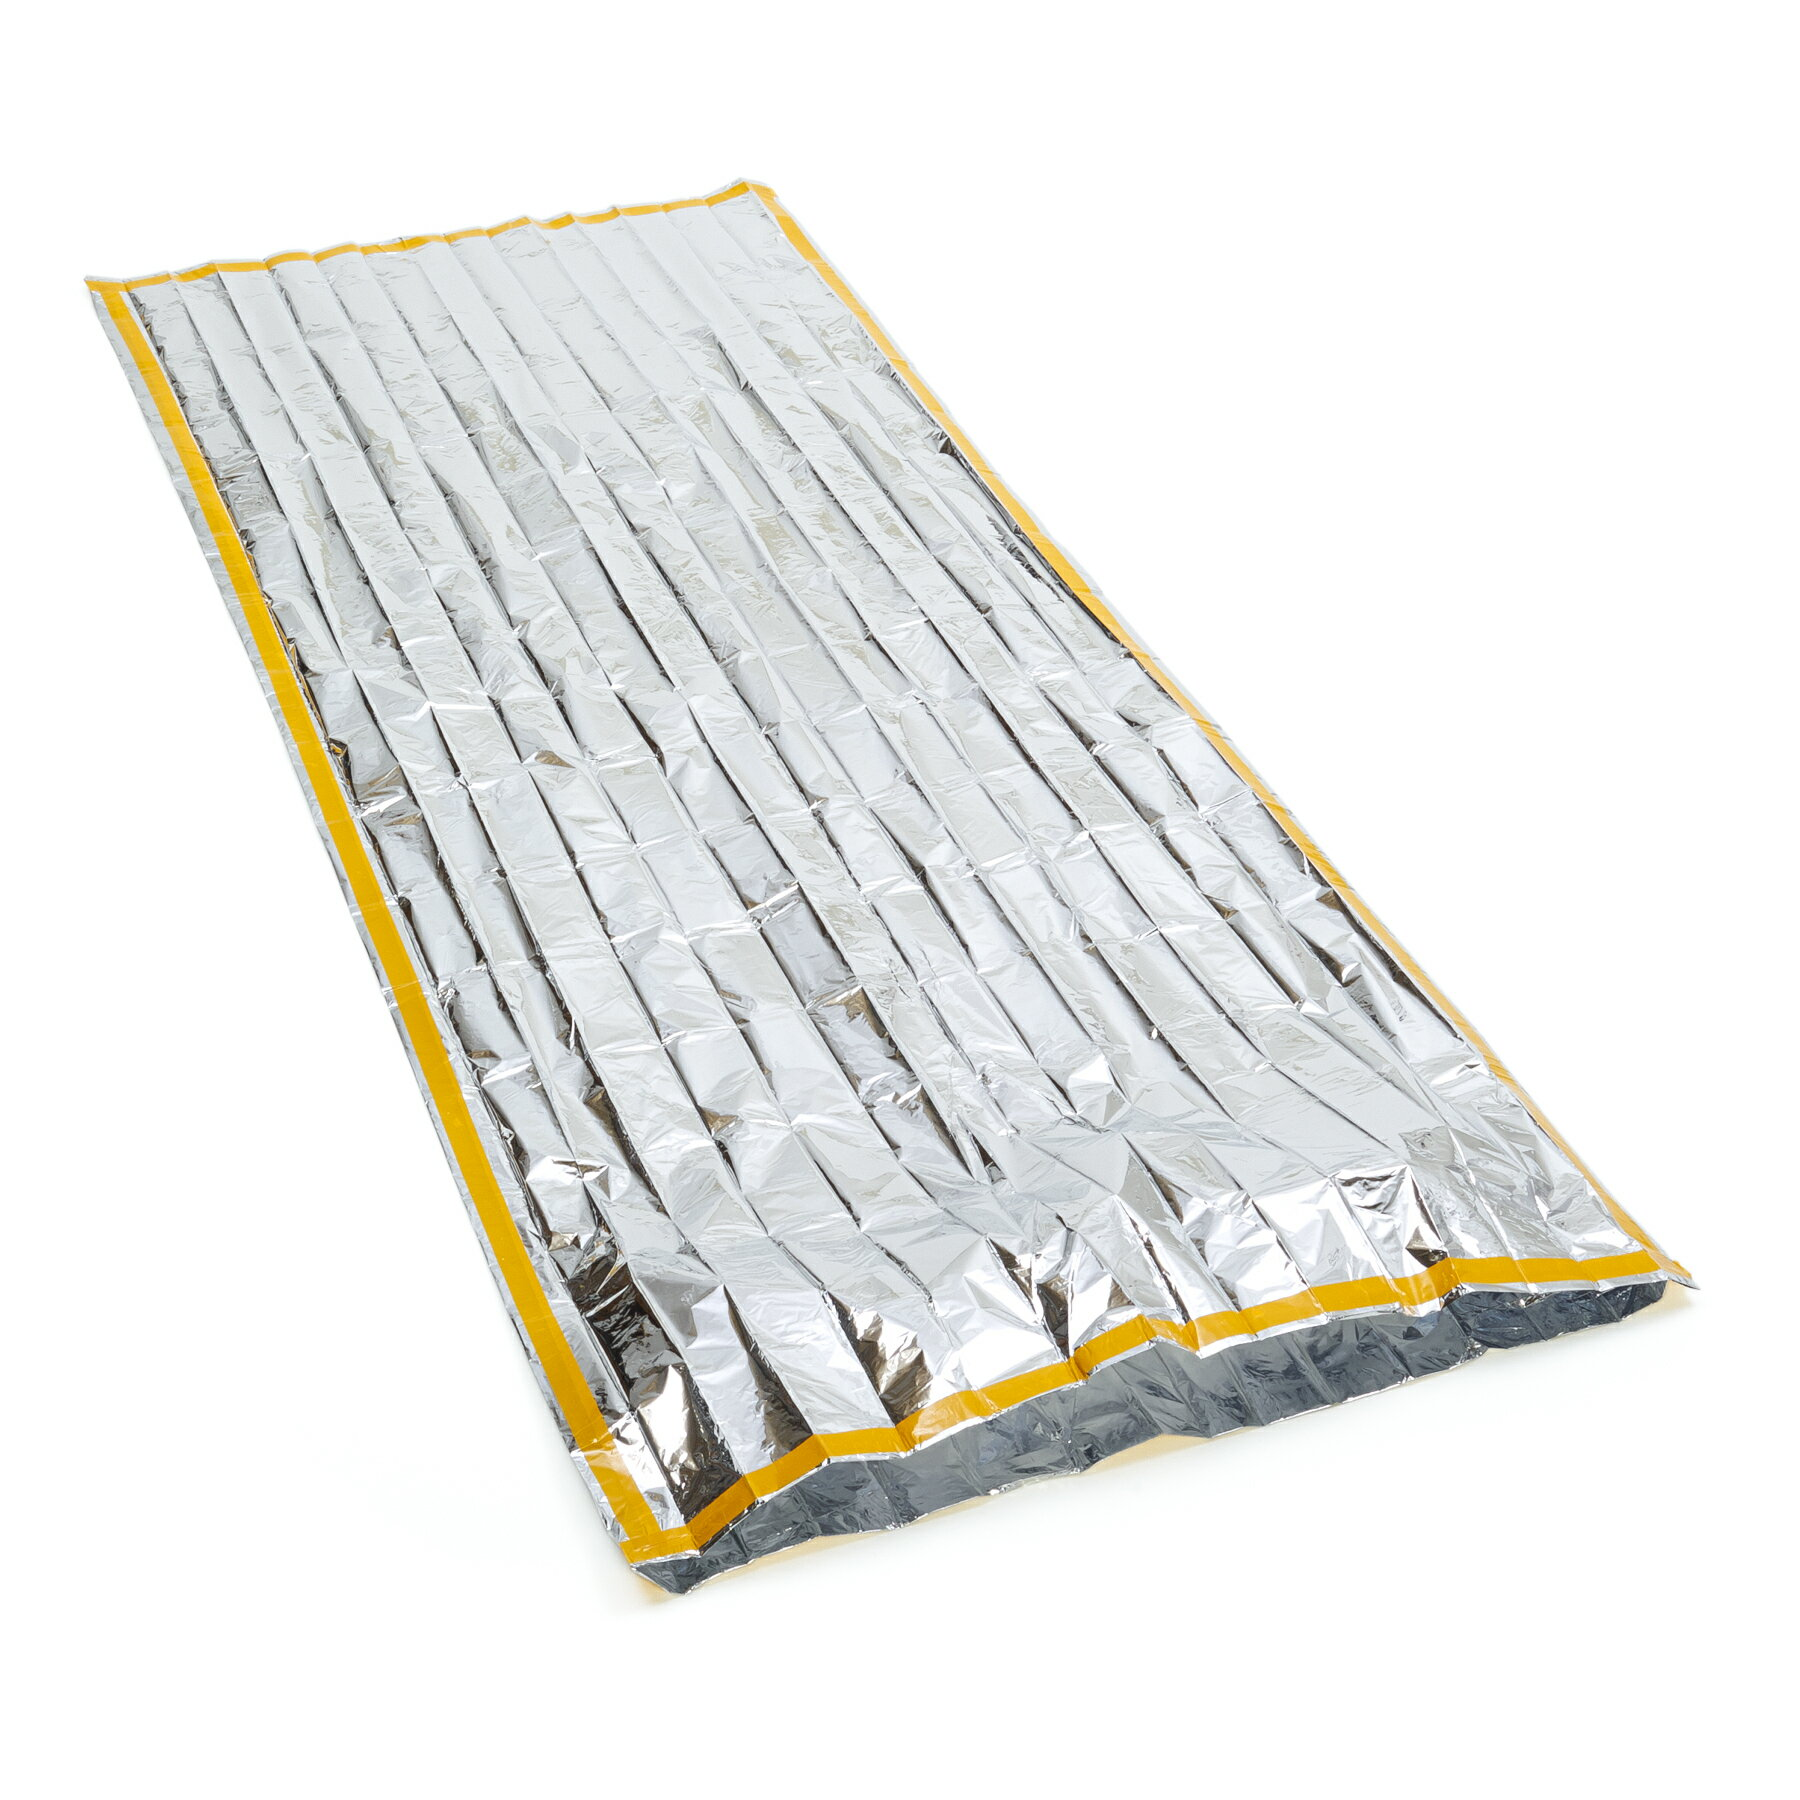 Equipped Outdoors Emergency Mylar Sleeping Bag 84 X 36 Blanket 0